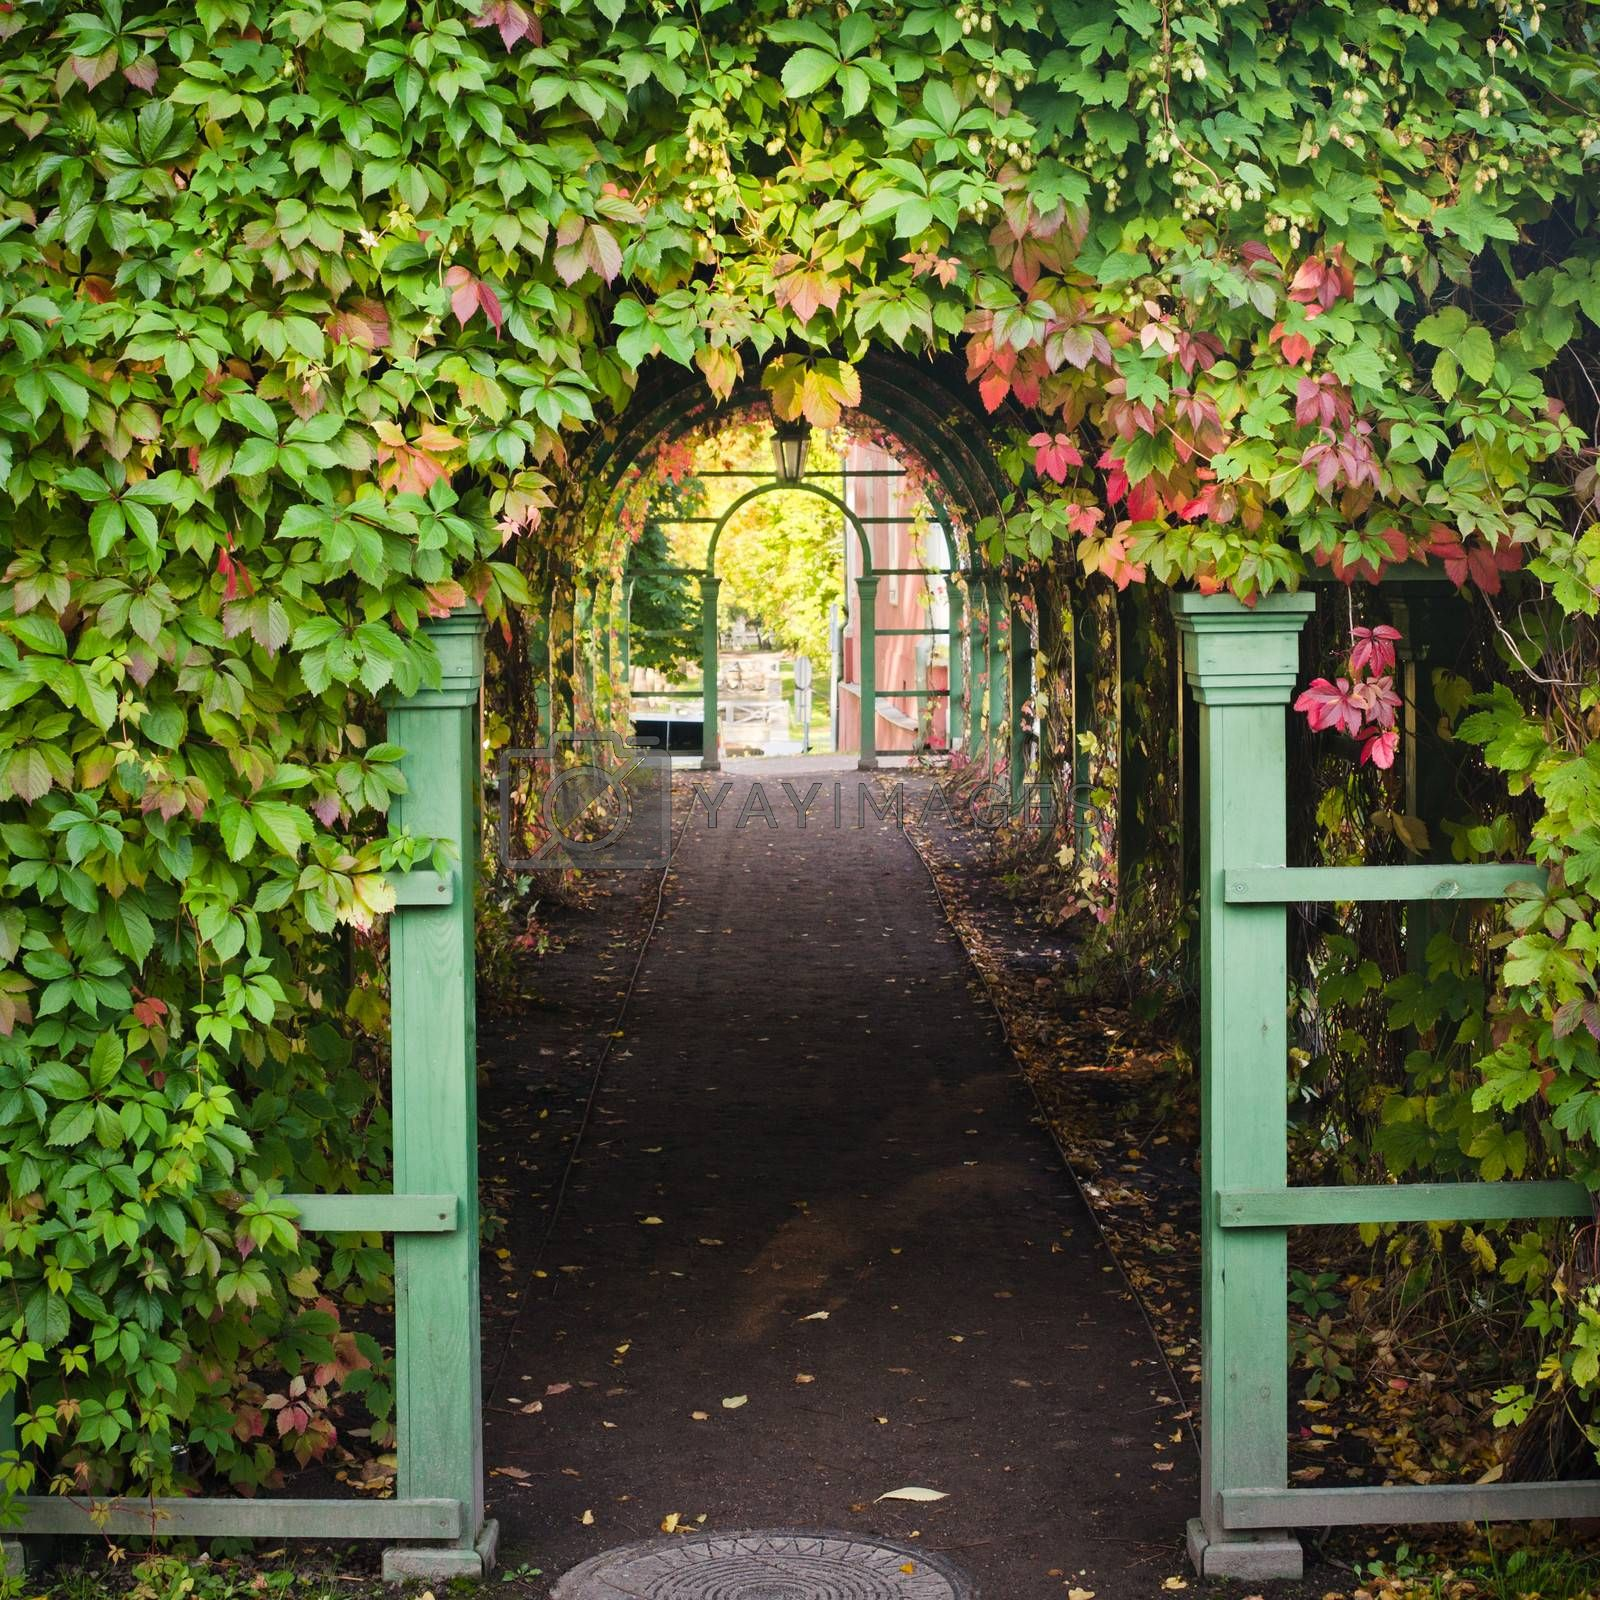 Branches of virginia creeper ramble on archway